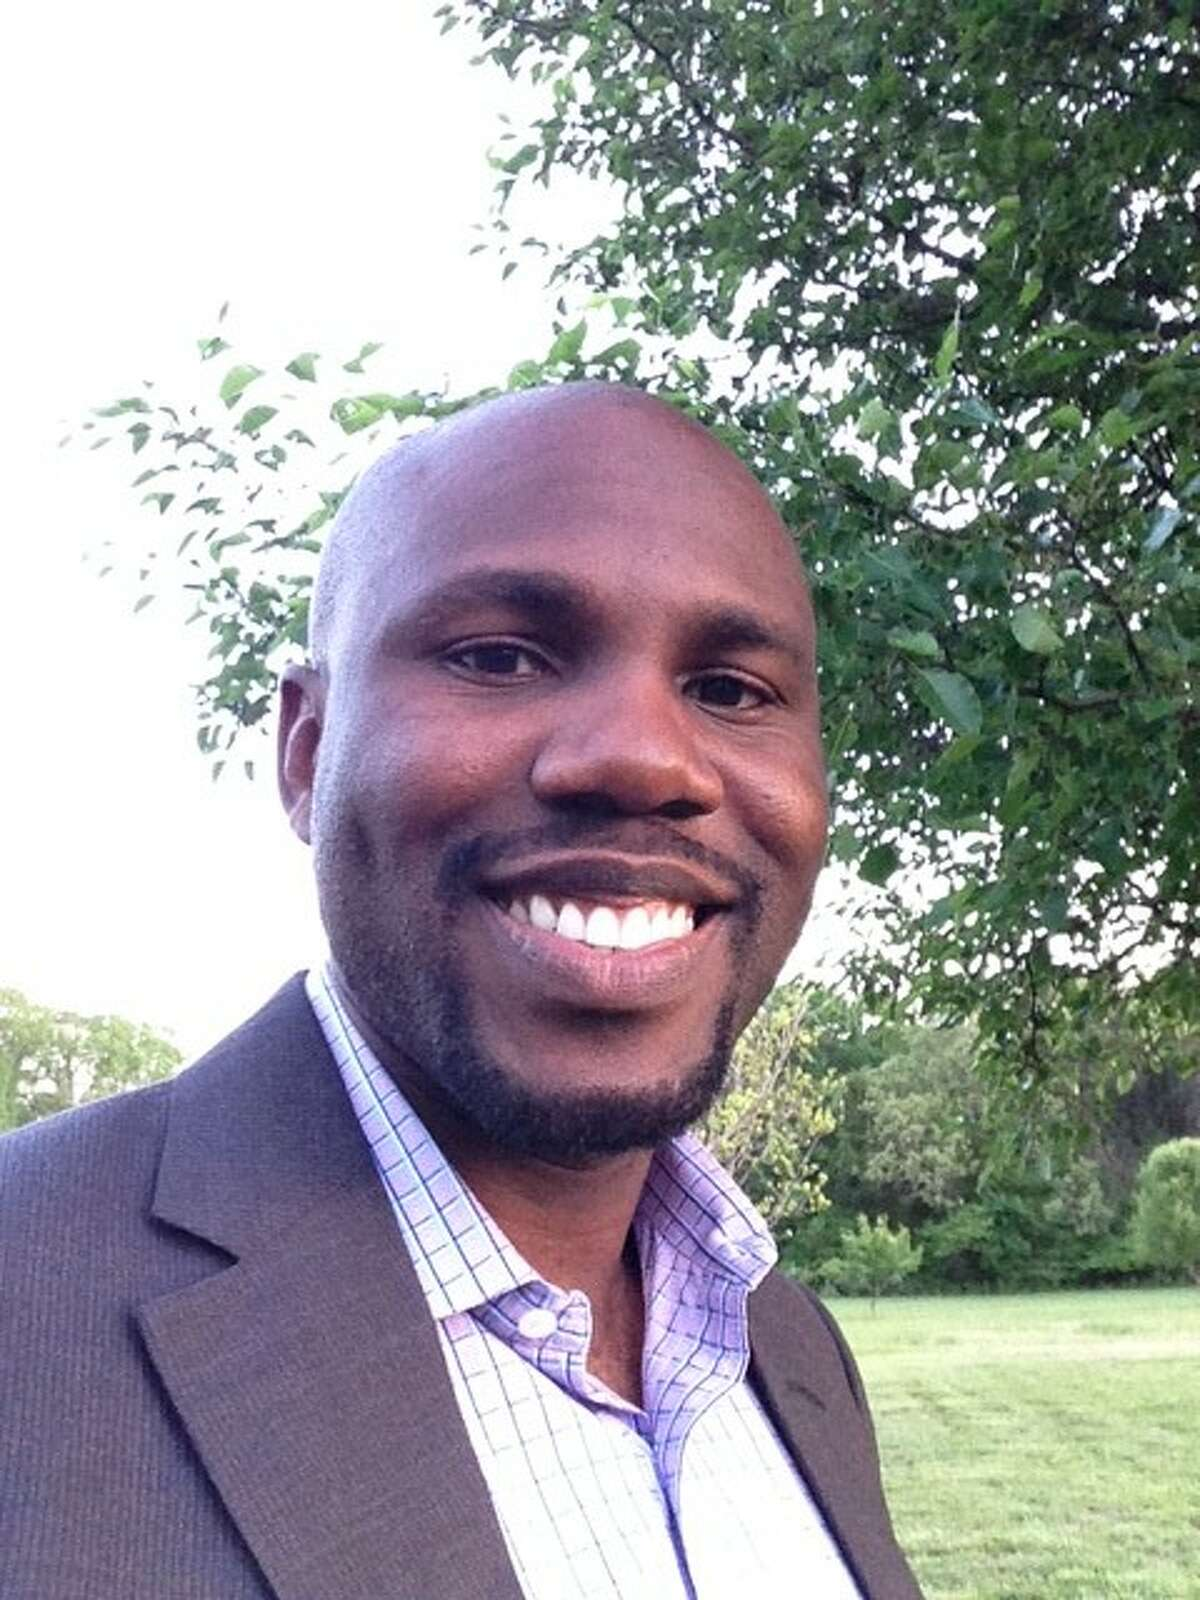 Jimi Amos, 33, is running for mayor of Pearland.